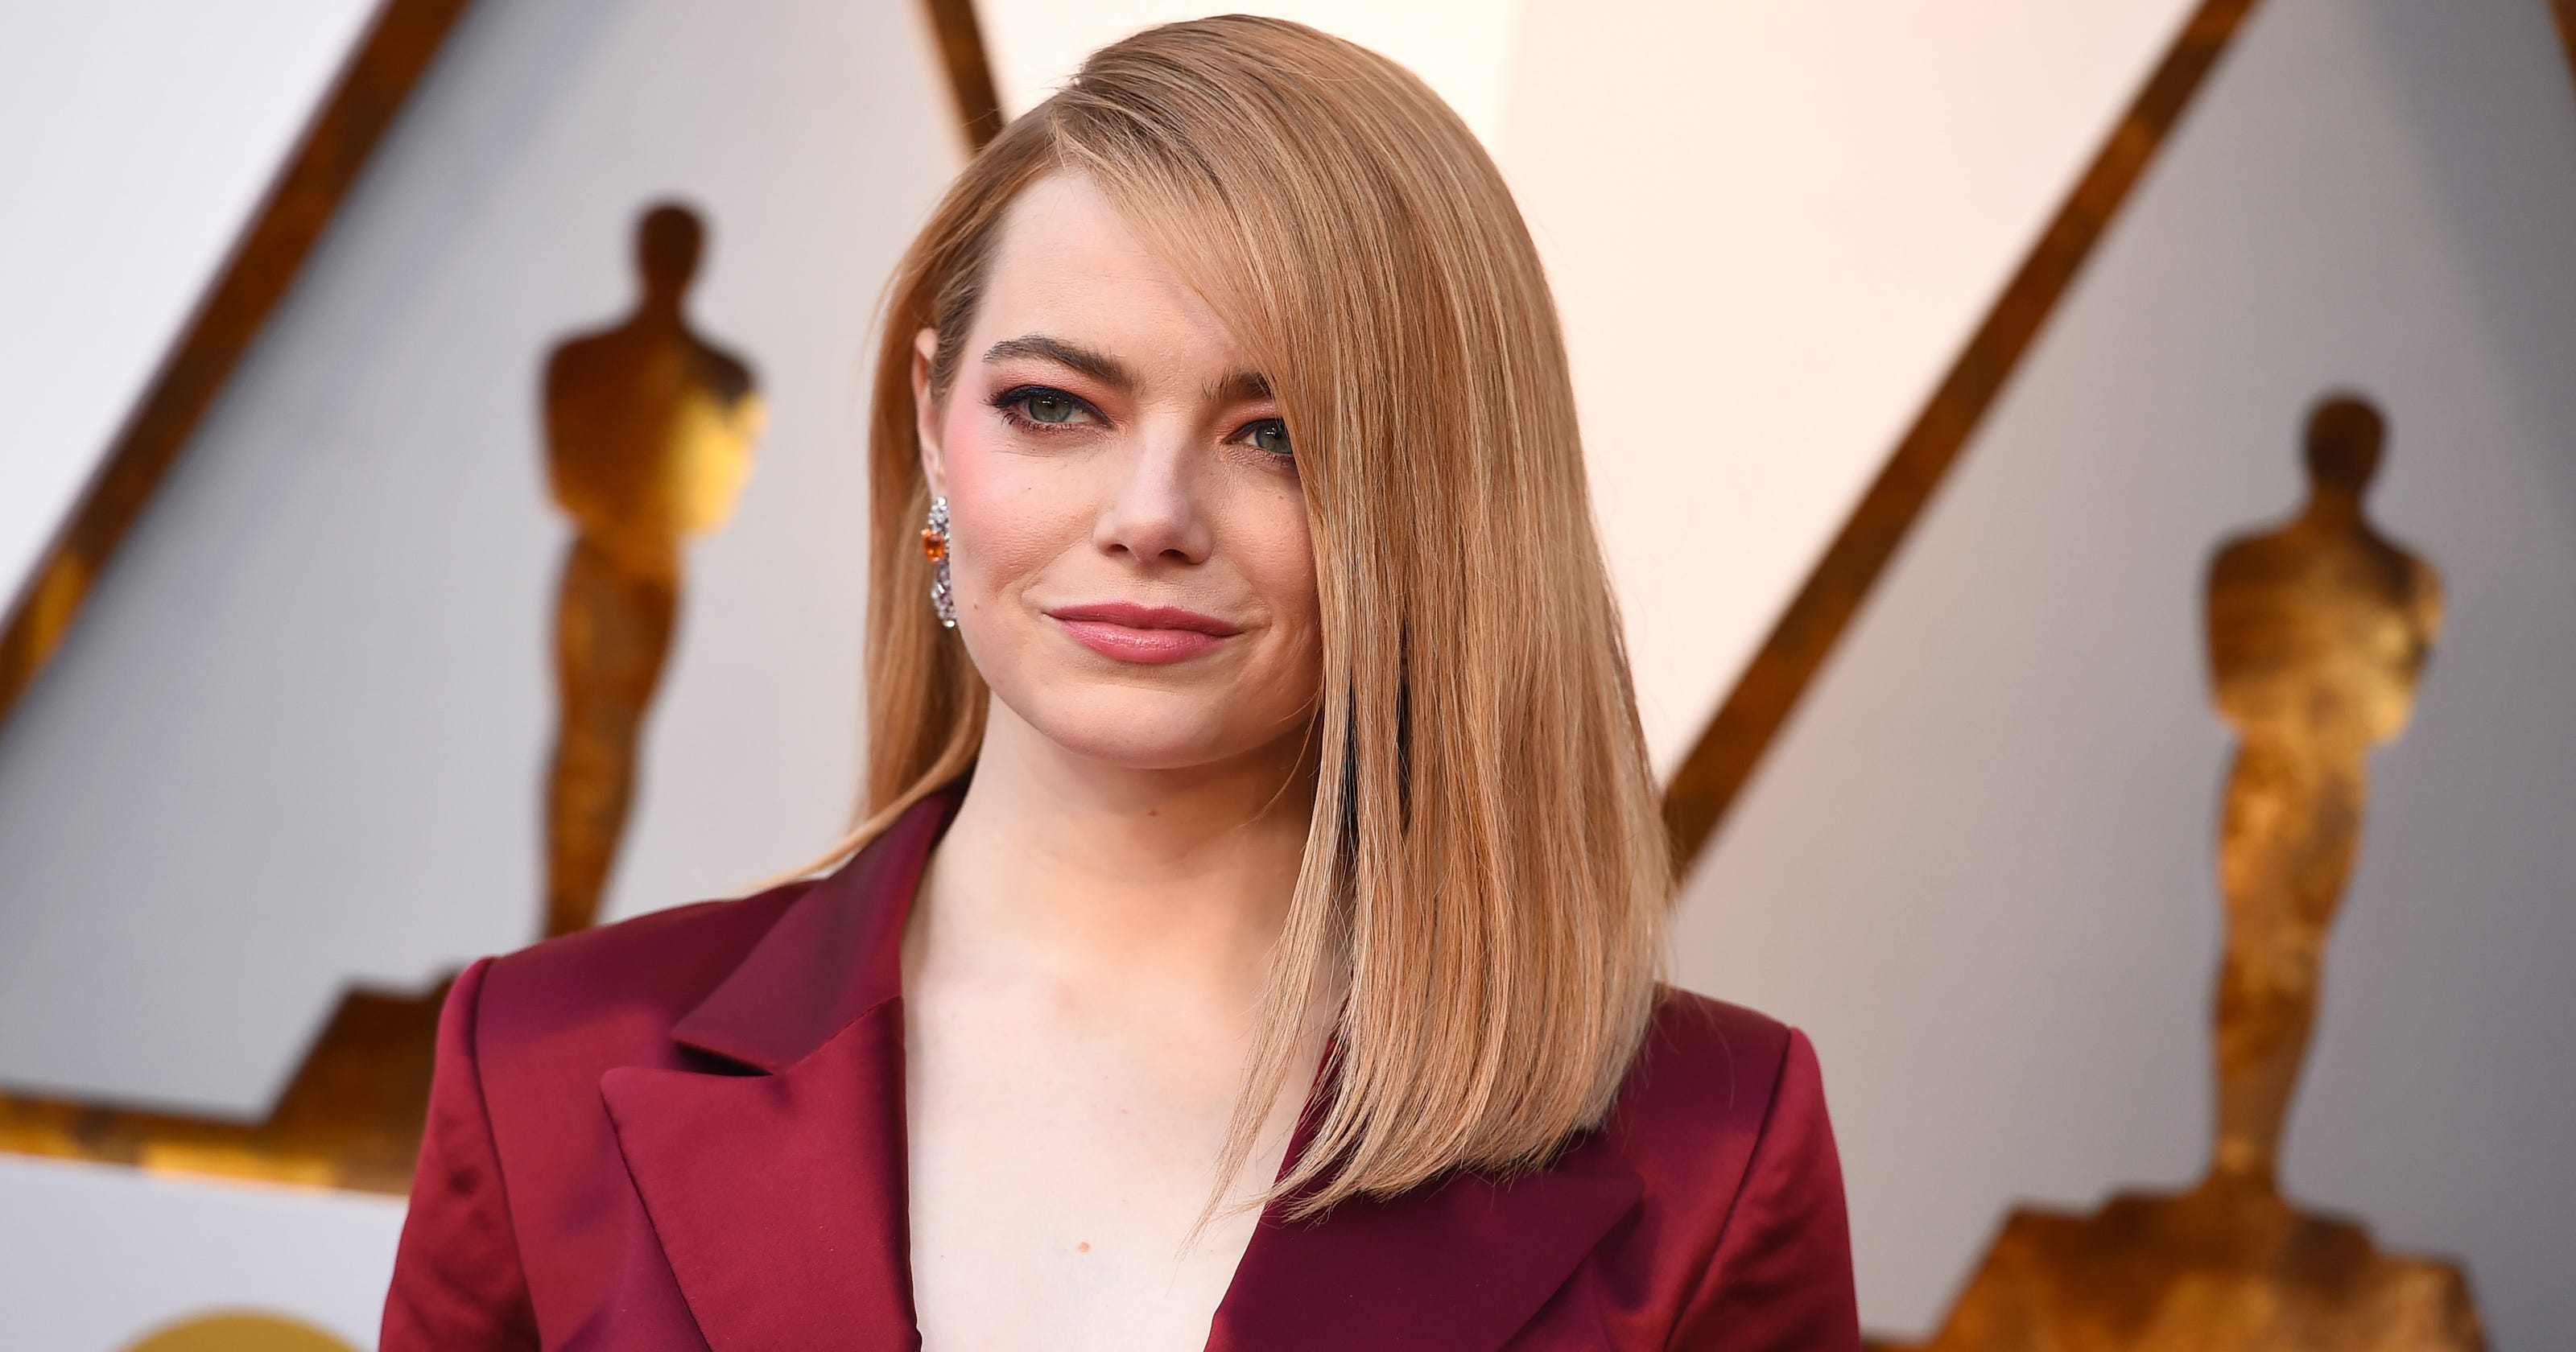 Maniac' trailer has Emma Stone and Jonah Hill together, more than a